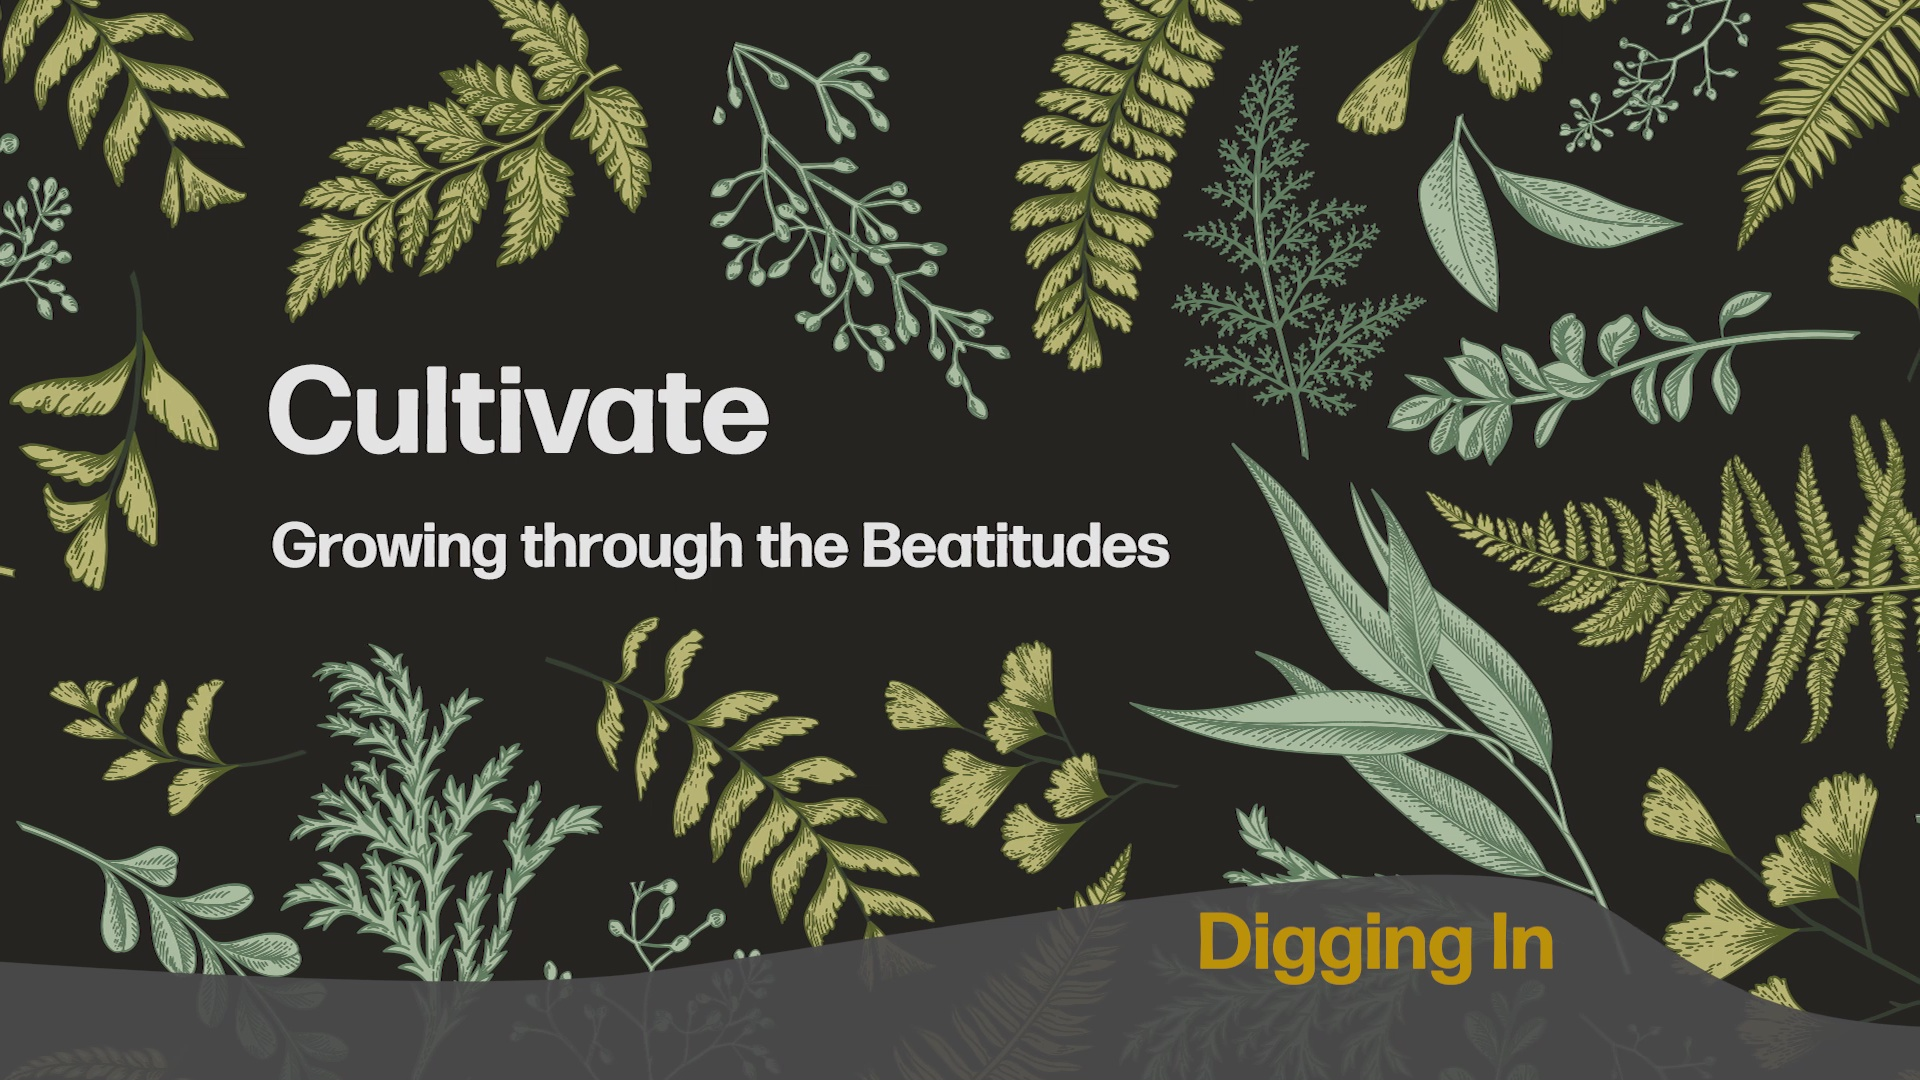 Digging In - June 9 - June 16, 2018 - Cultivate